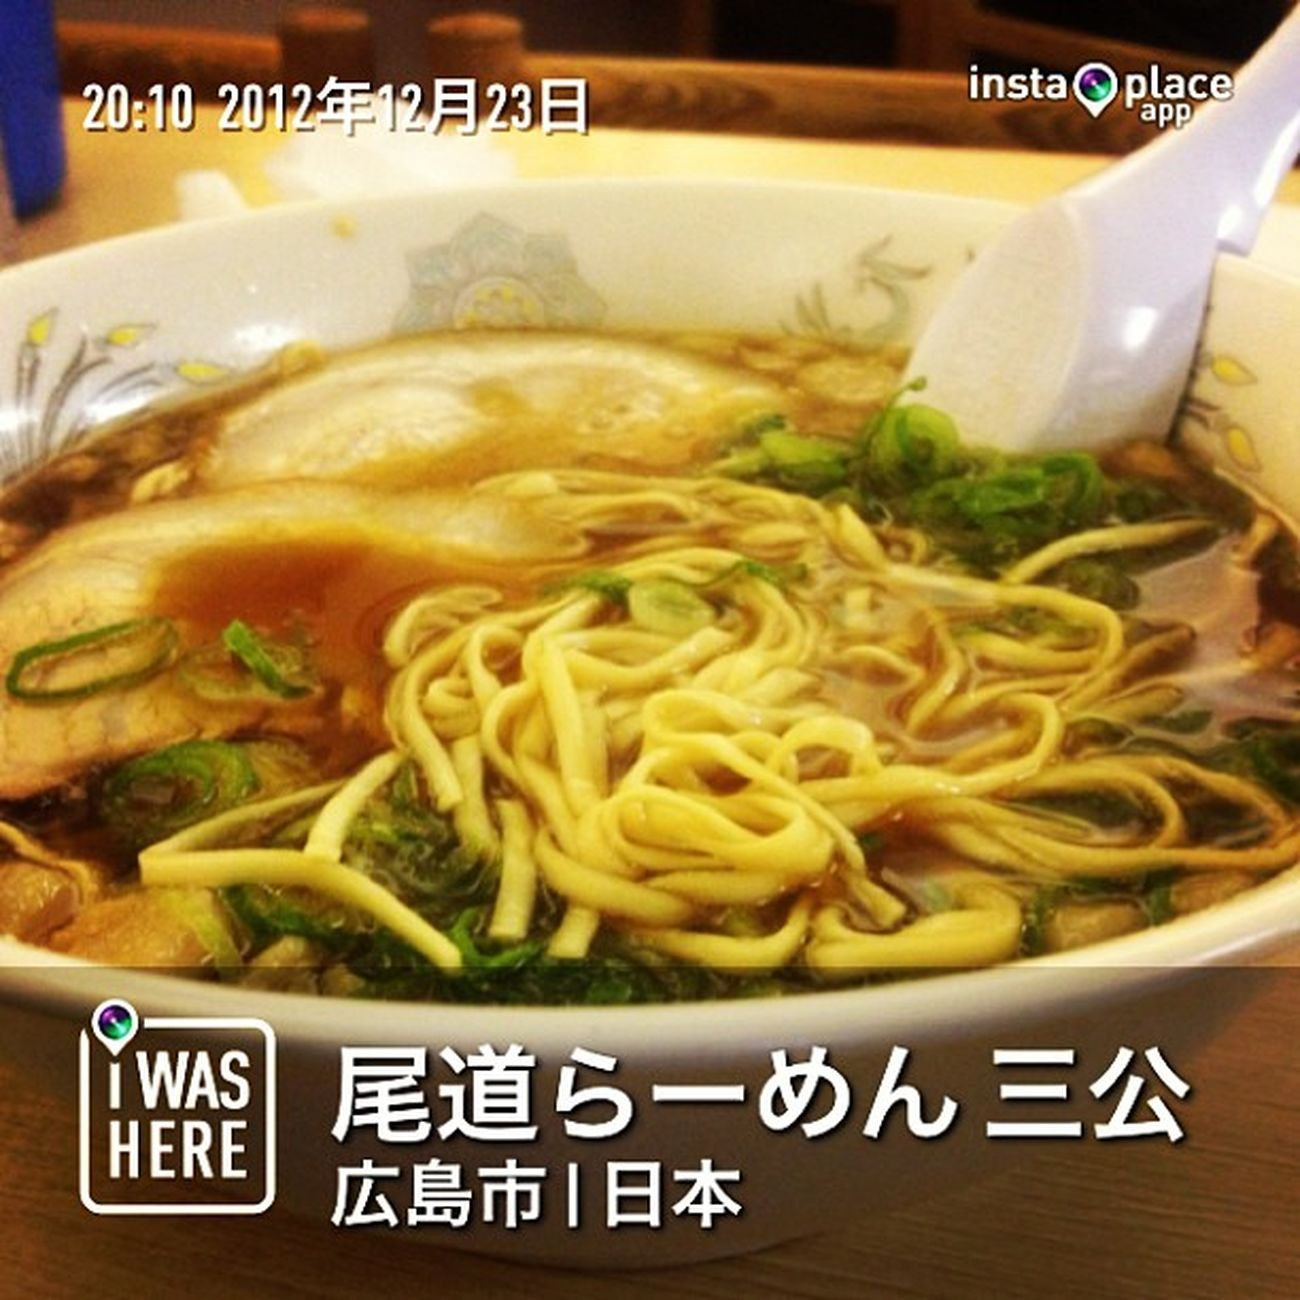 久々\(^o^)/InstaPlace Instaplaceapp Instagood Photooftheday Instamood Picoftheday Instadaily Photo Instacool Instapic Picture Pic @instaplaceapp Place Earth World 日本 Japan 広島市 Hiroshimashi 尾道らーめん三公 Food Foodporn Restaurant Night